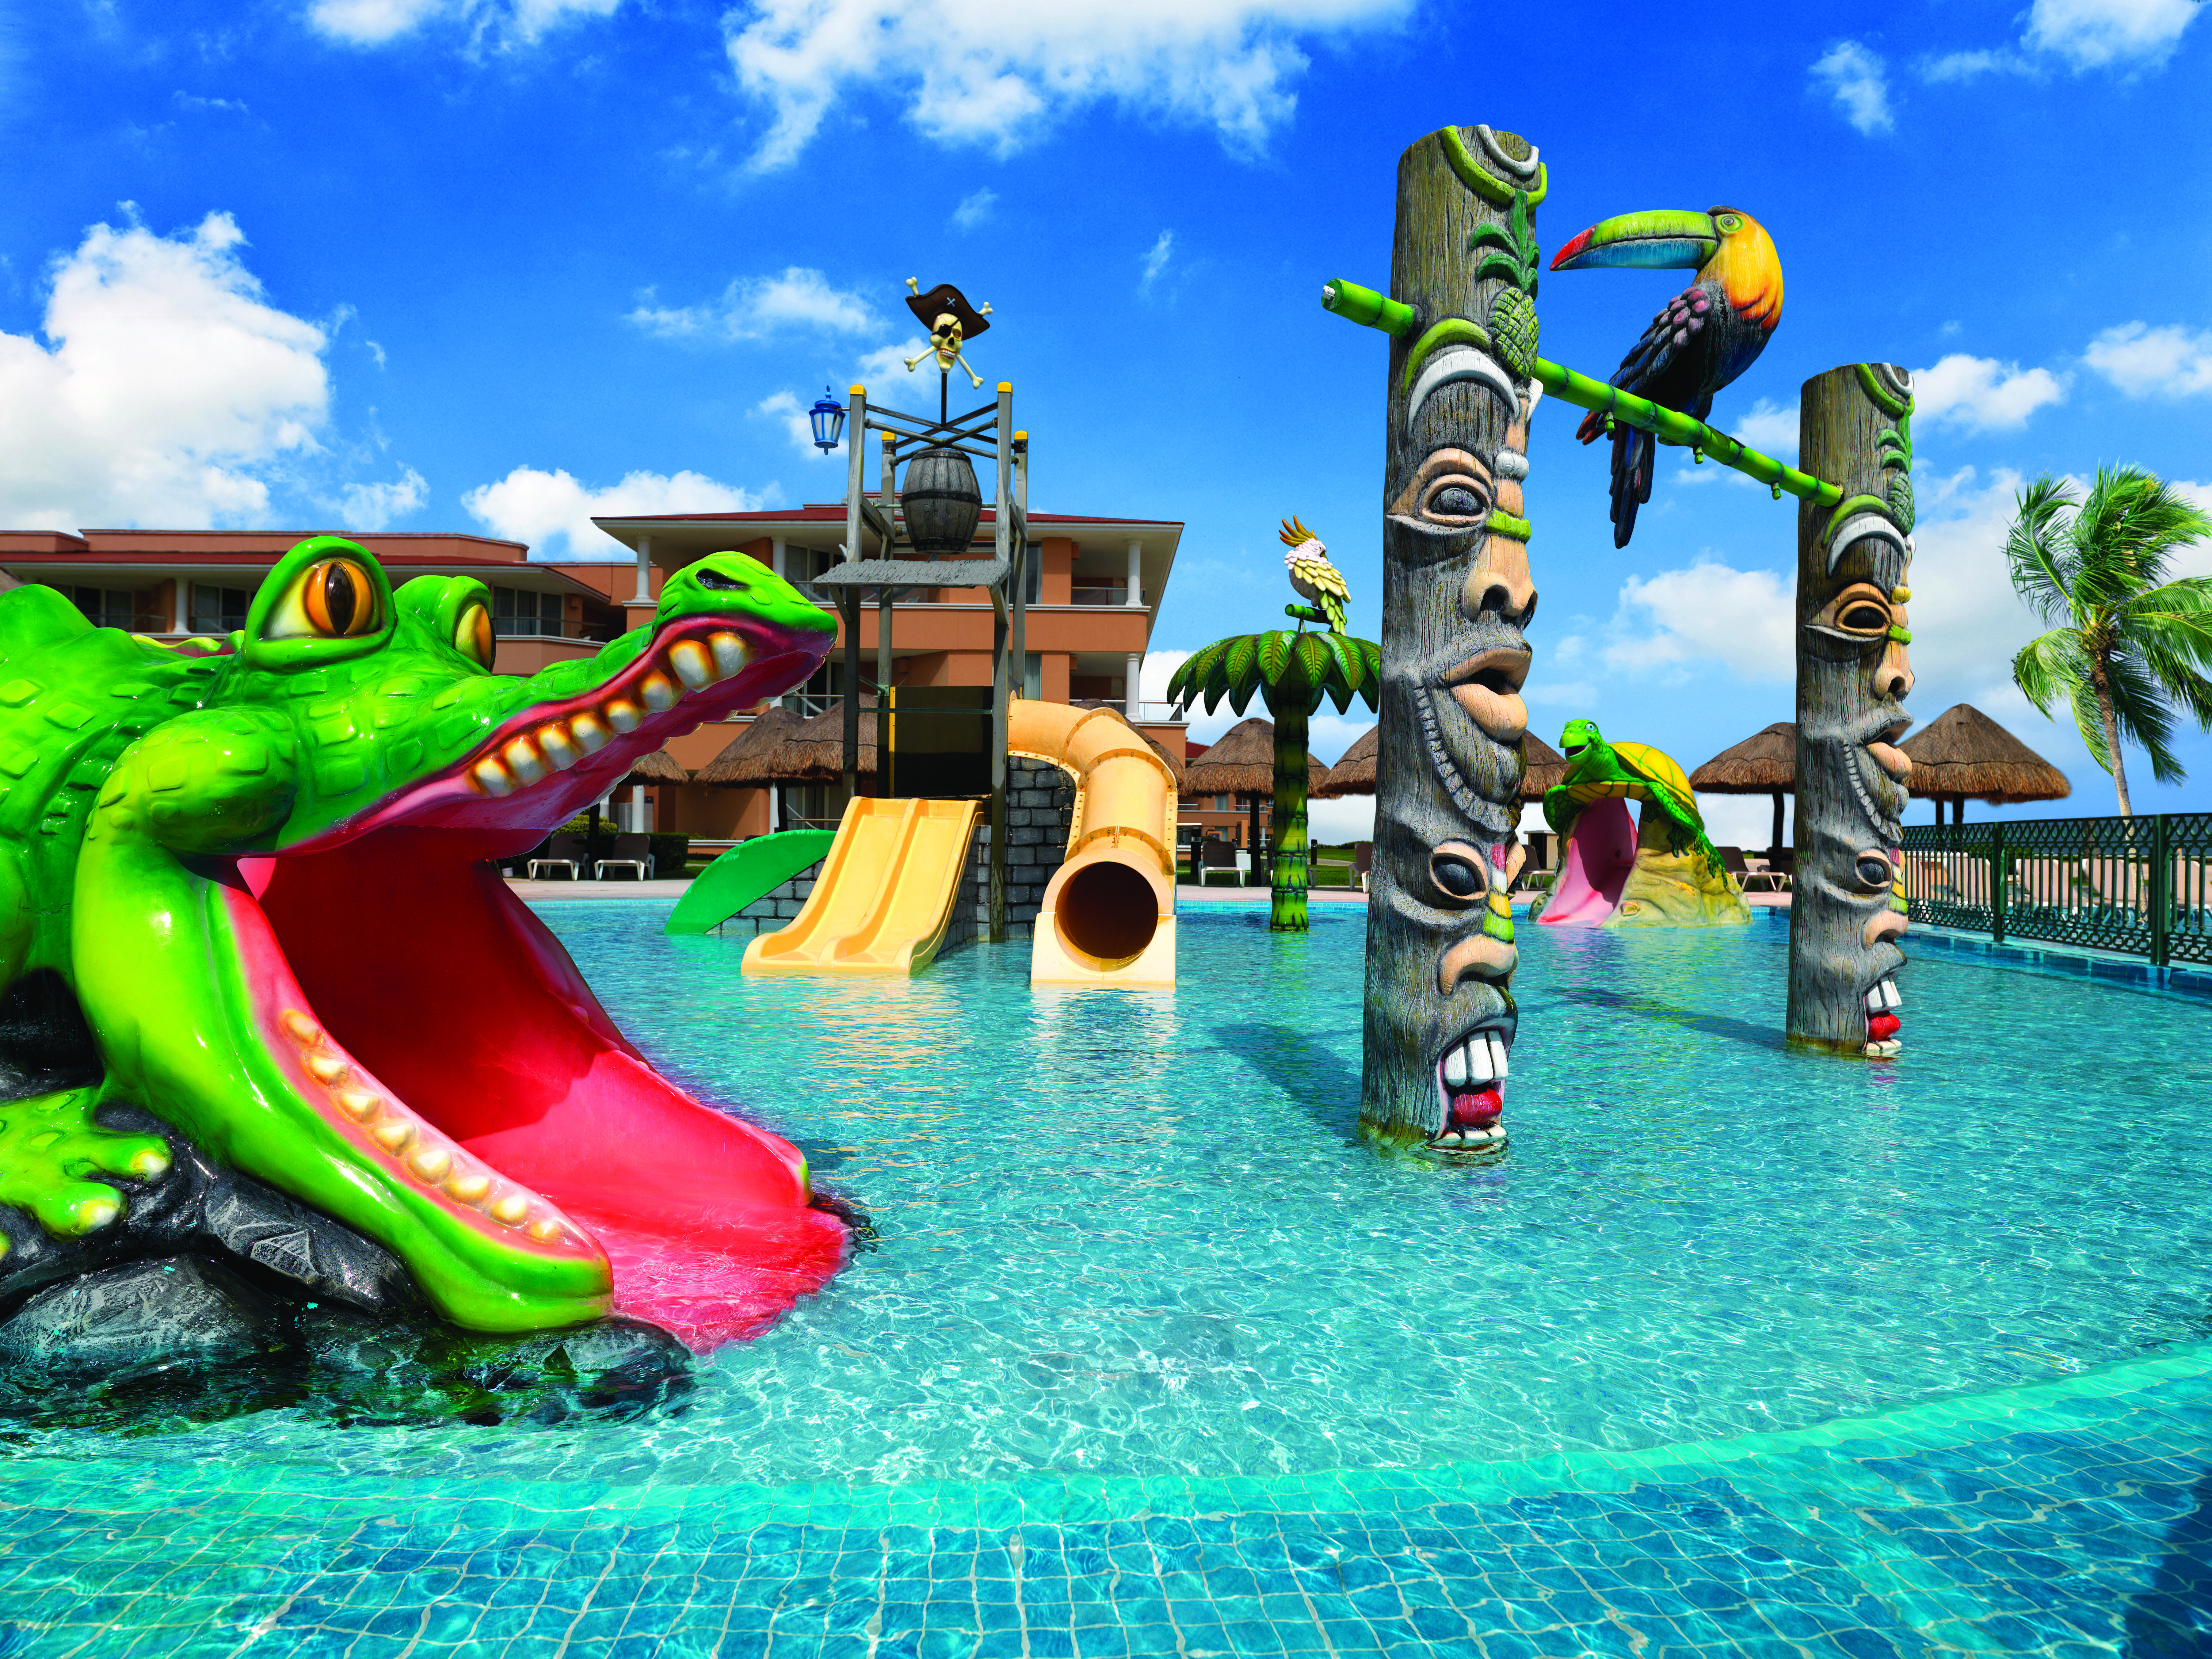 Kids Pool Area At The Moon Palace Family Resort Located In Cancun Mexico Kids Vacation Resorts For Kids Moon Palace